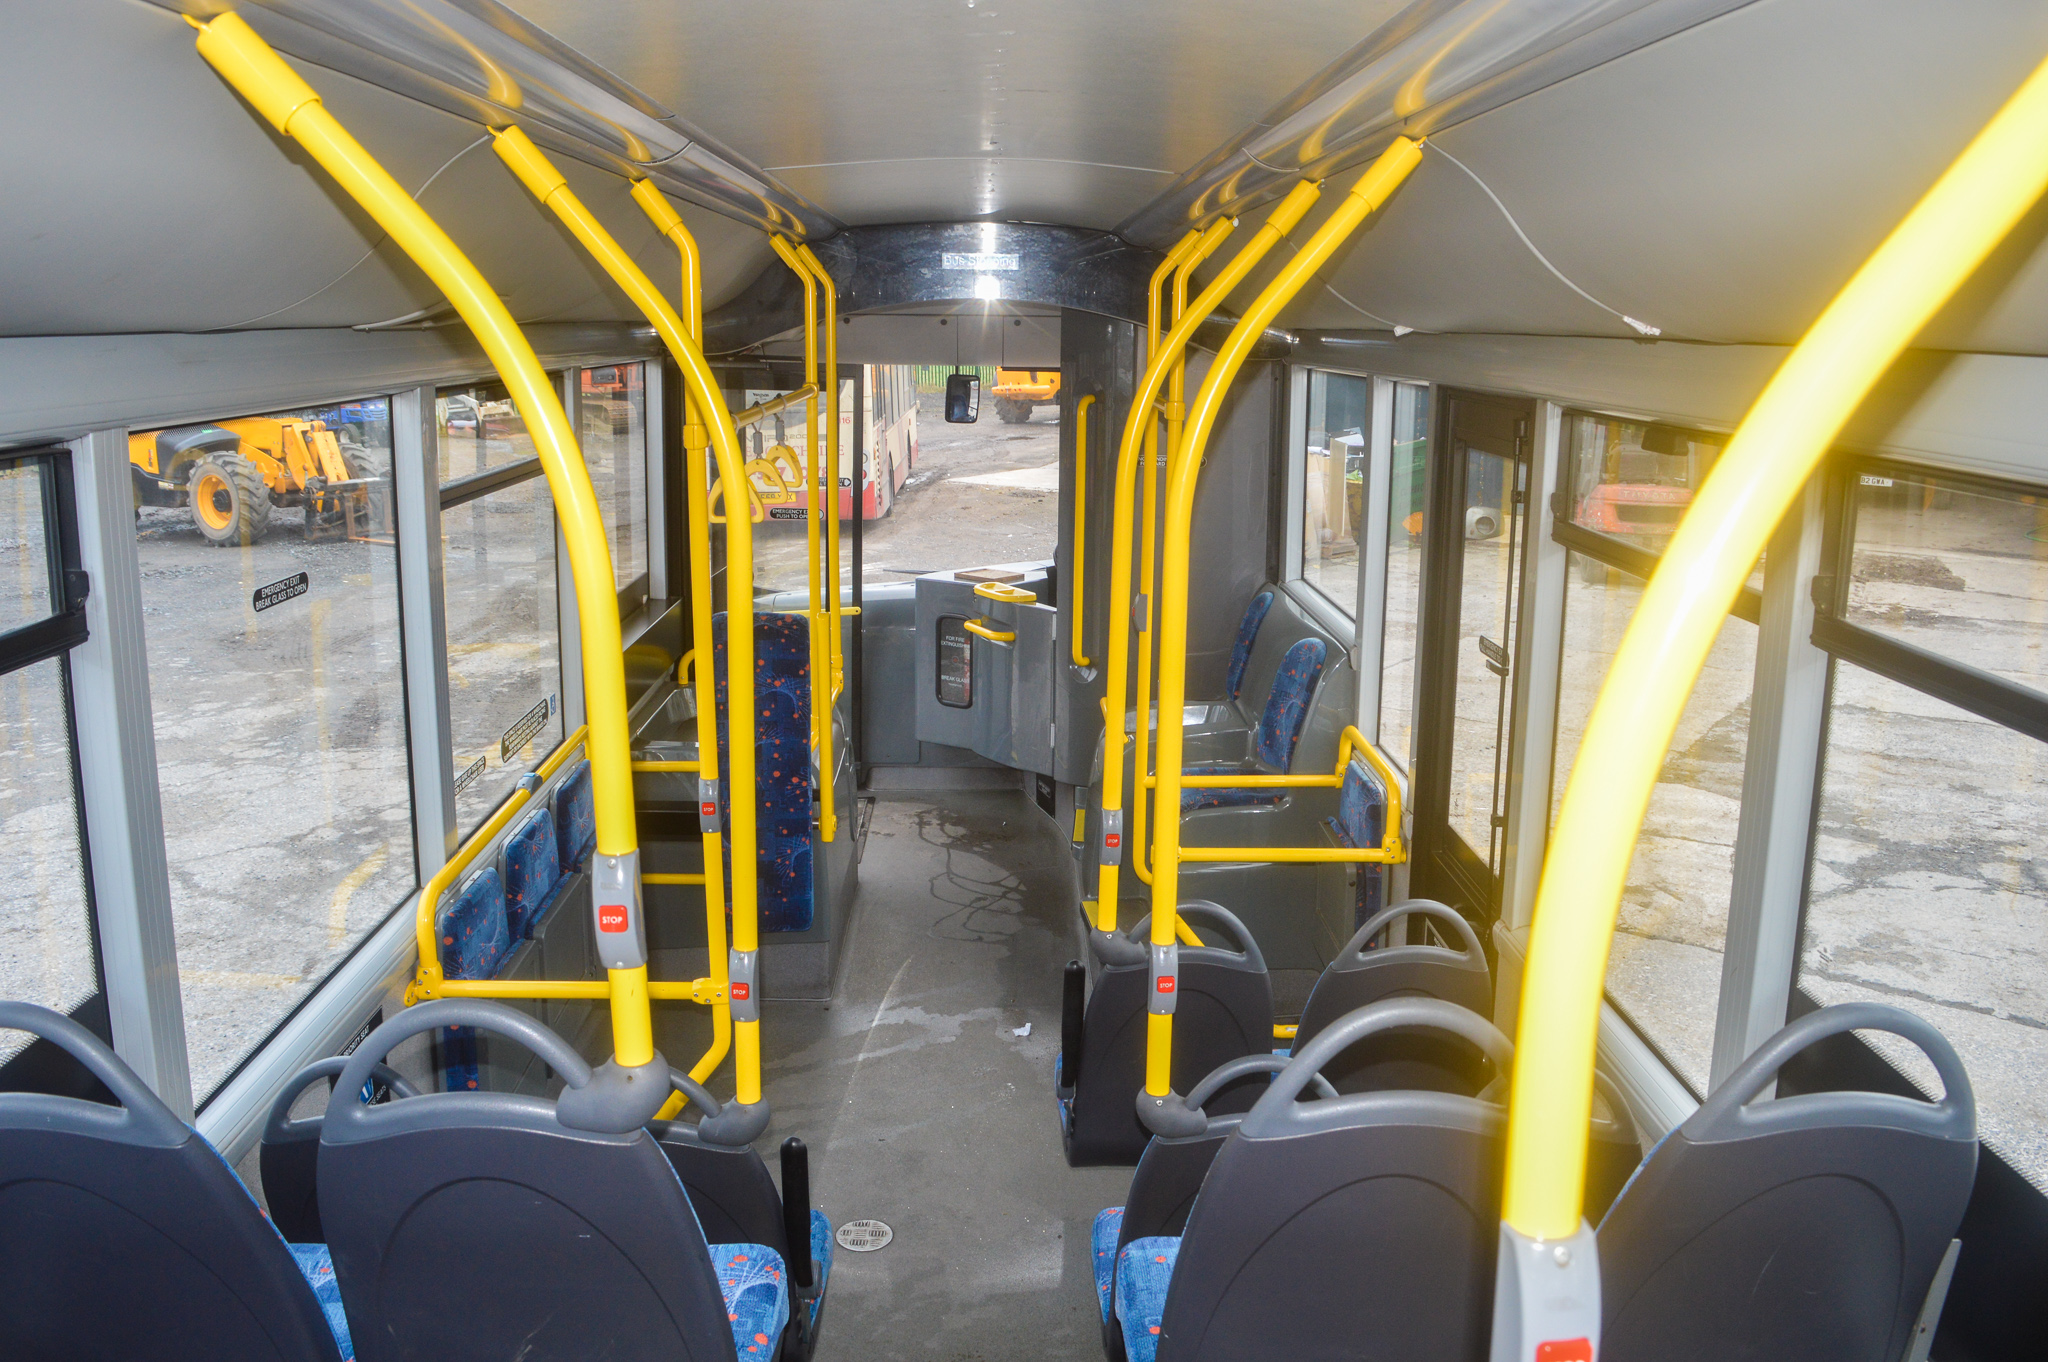 Lot 2 - Alexander Dennis Dart 4 Enviro 2000 29 seat single deck service bus Registration Number: YX12 FRD